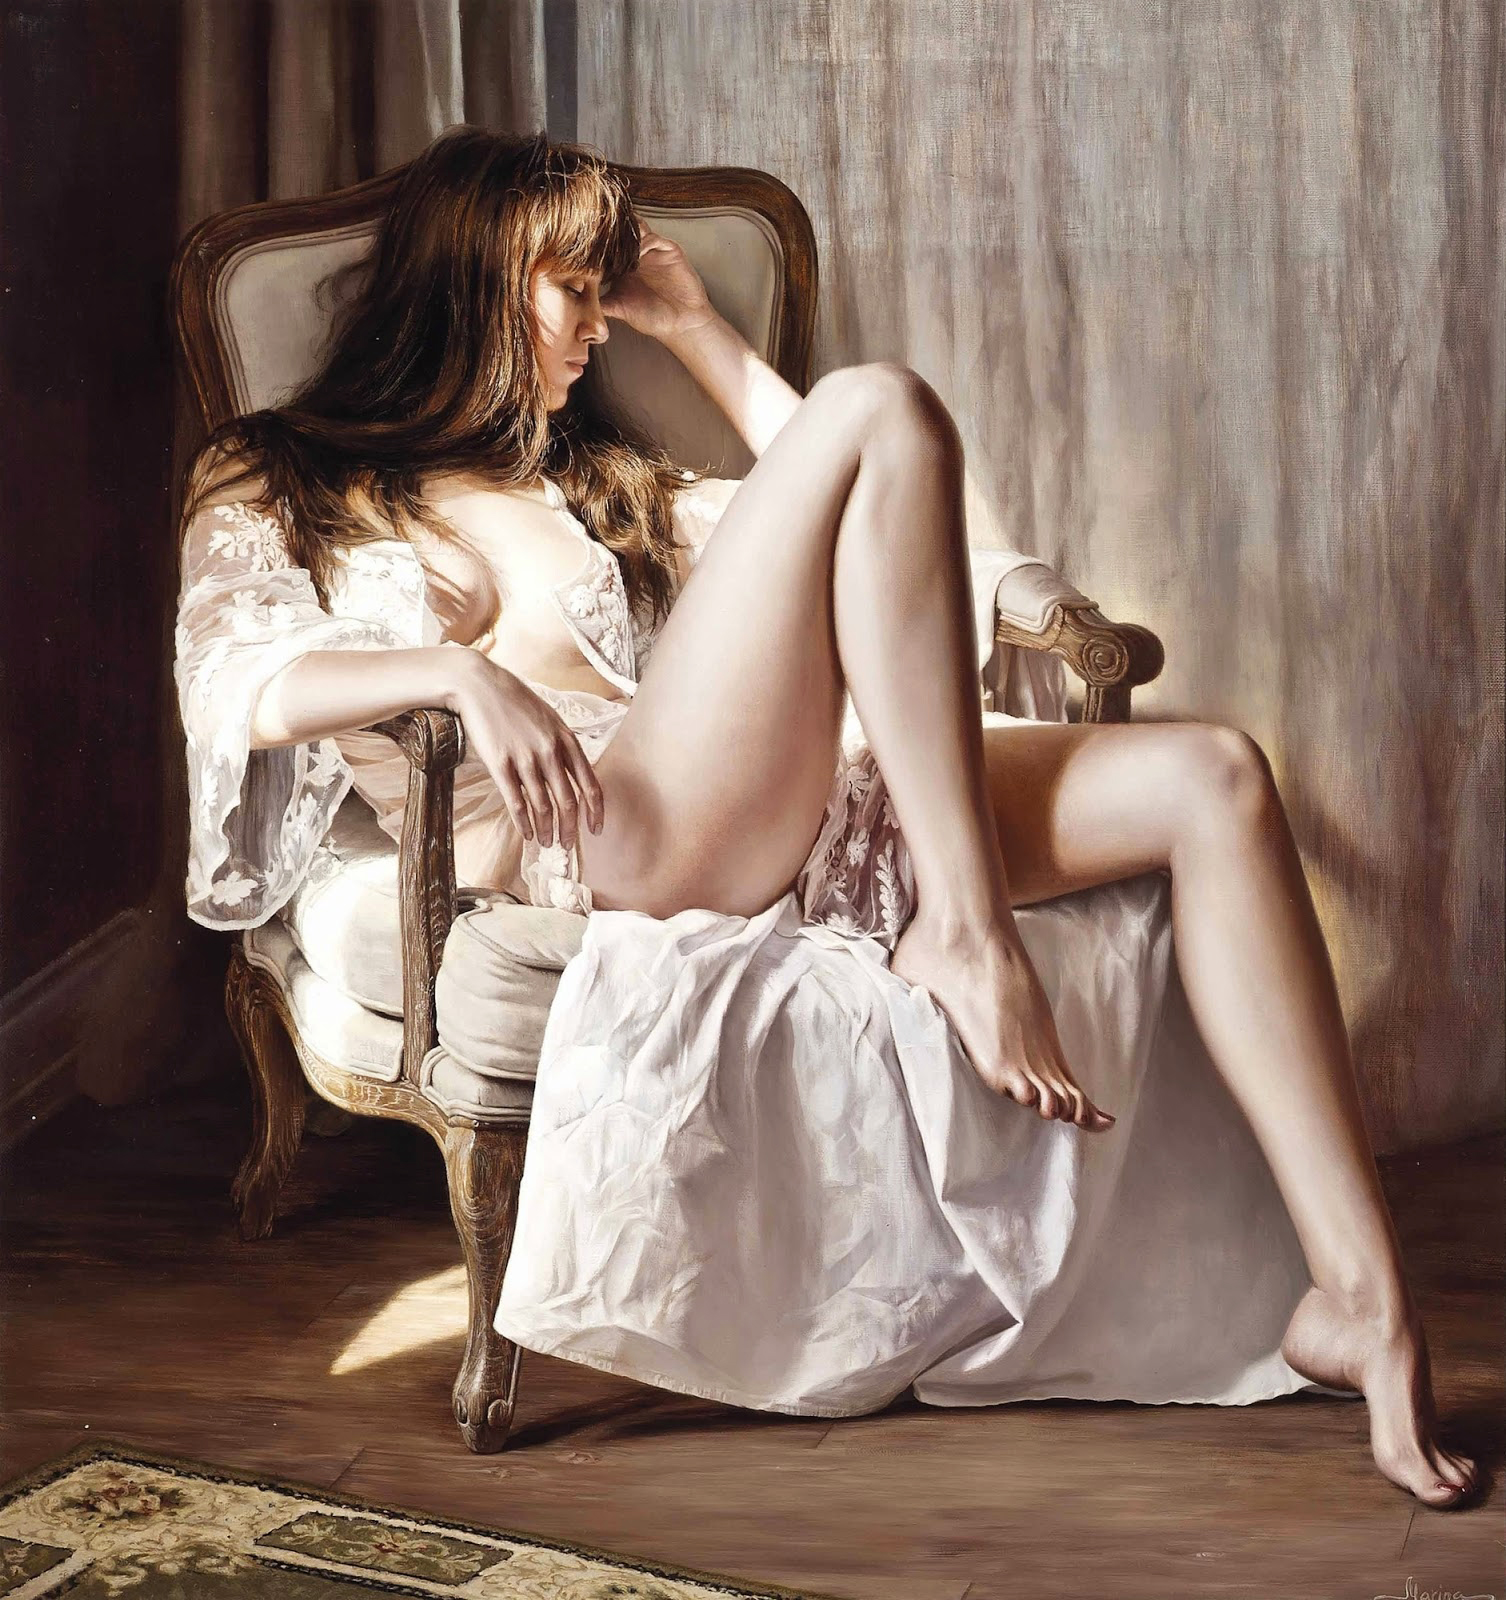 Hyperrealistic Oil Paintings by Marina Marina - Ready for Bed